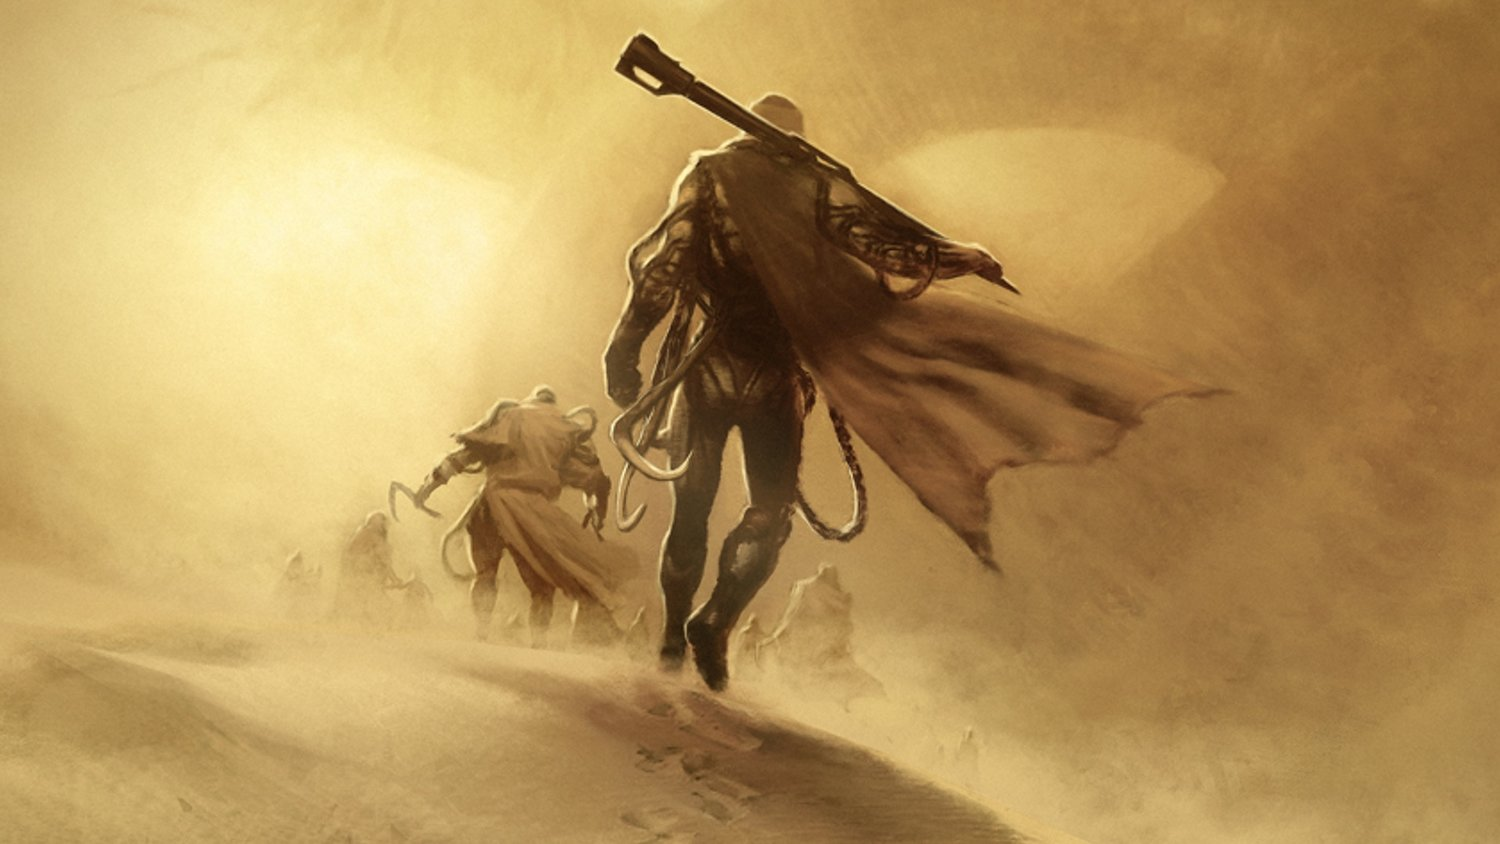 The Upcoming DUNE Adaptation will be written by FORREST GUMP Writer Eric Roth